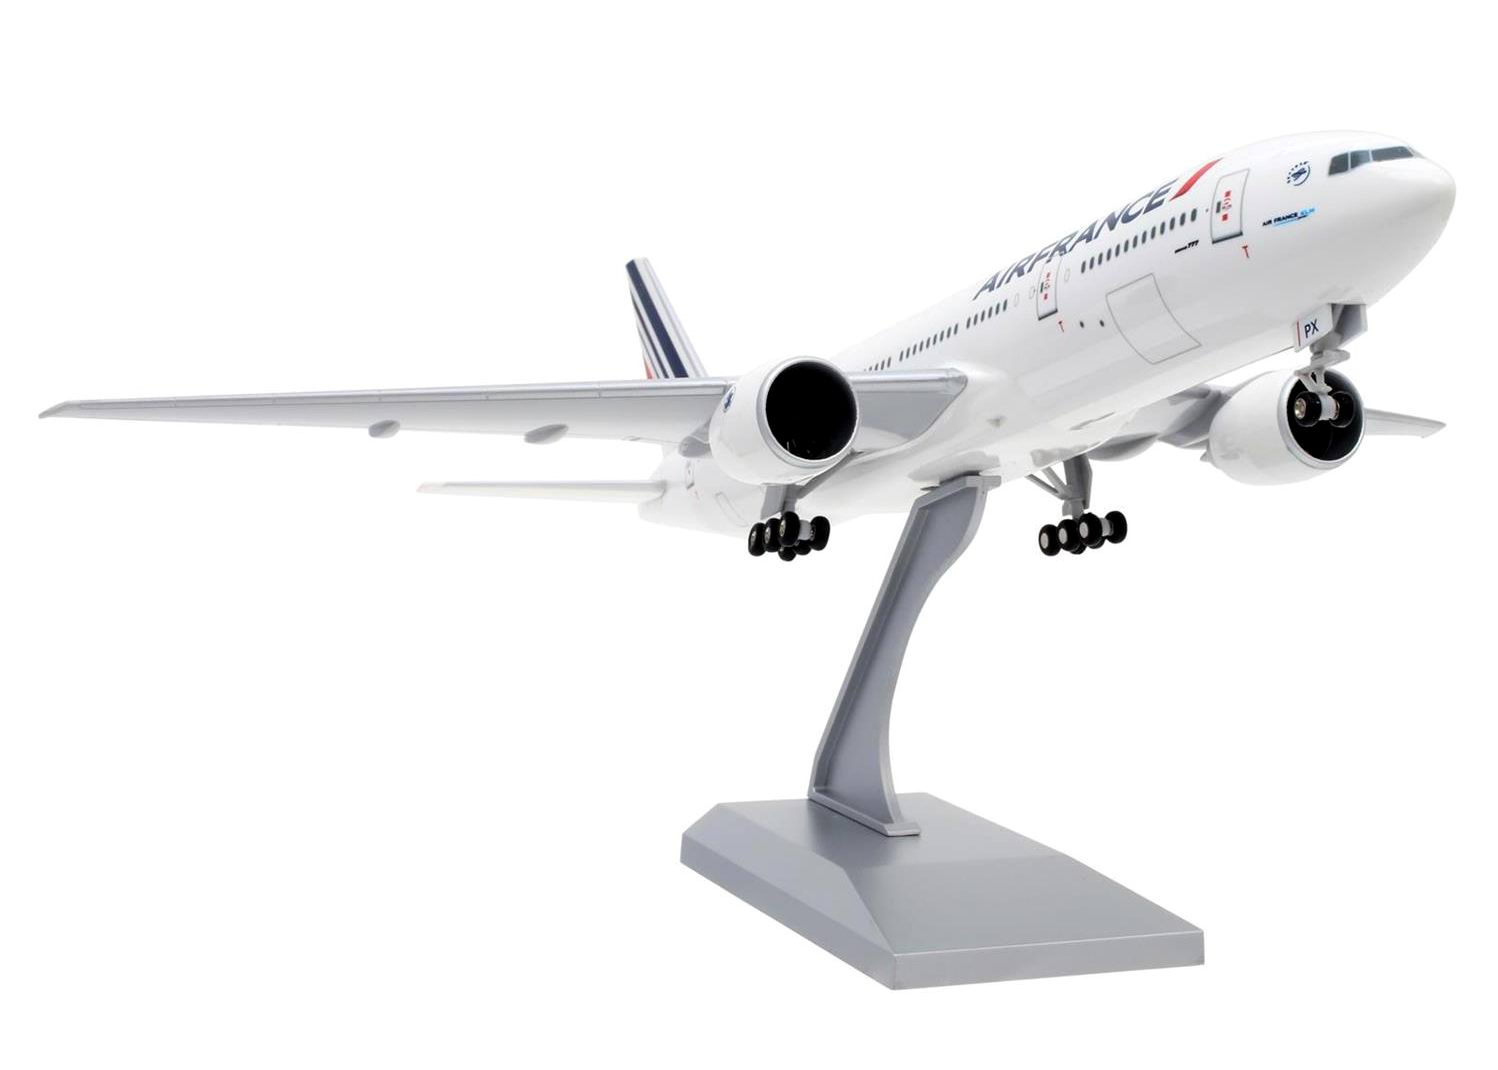 Maquette BOEING 777-200 AIR FRANCE 1/200